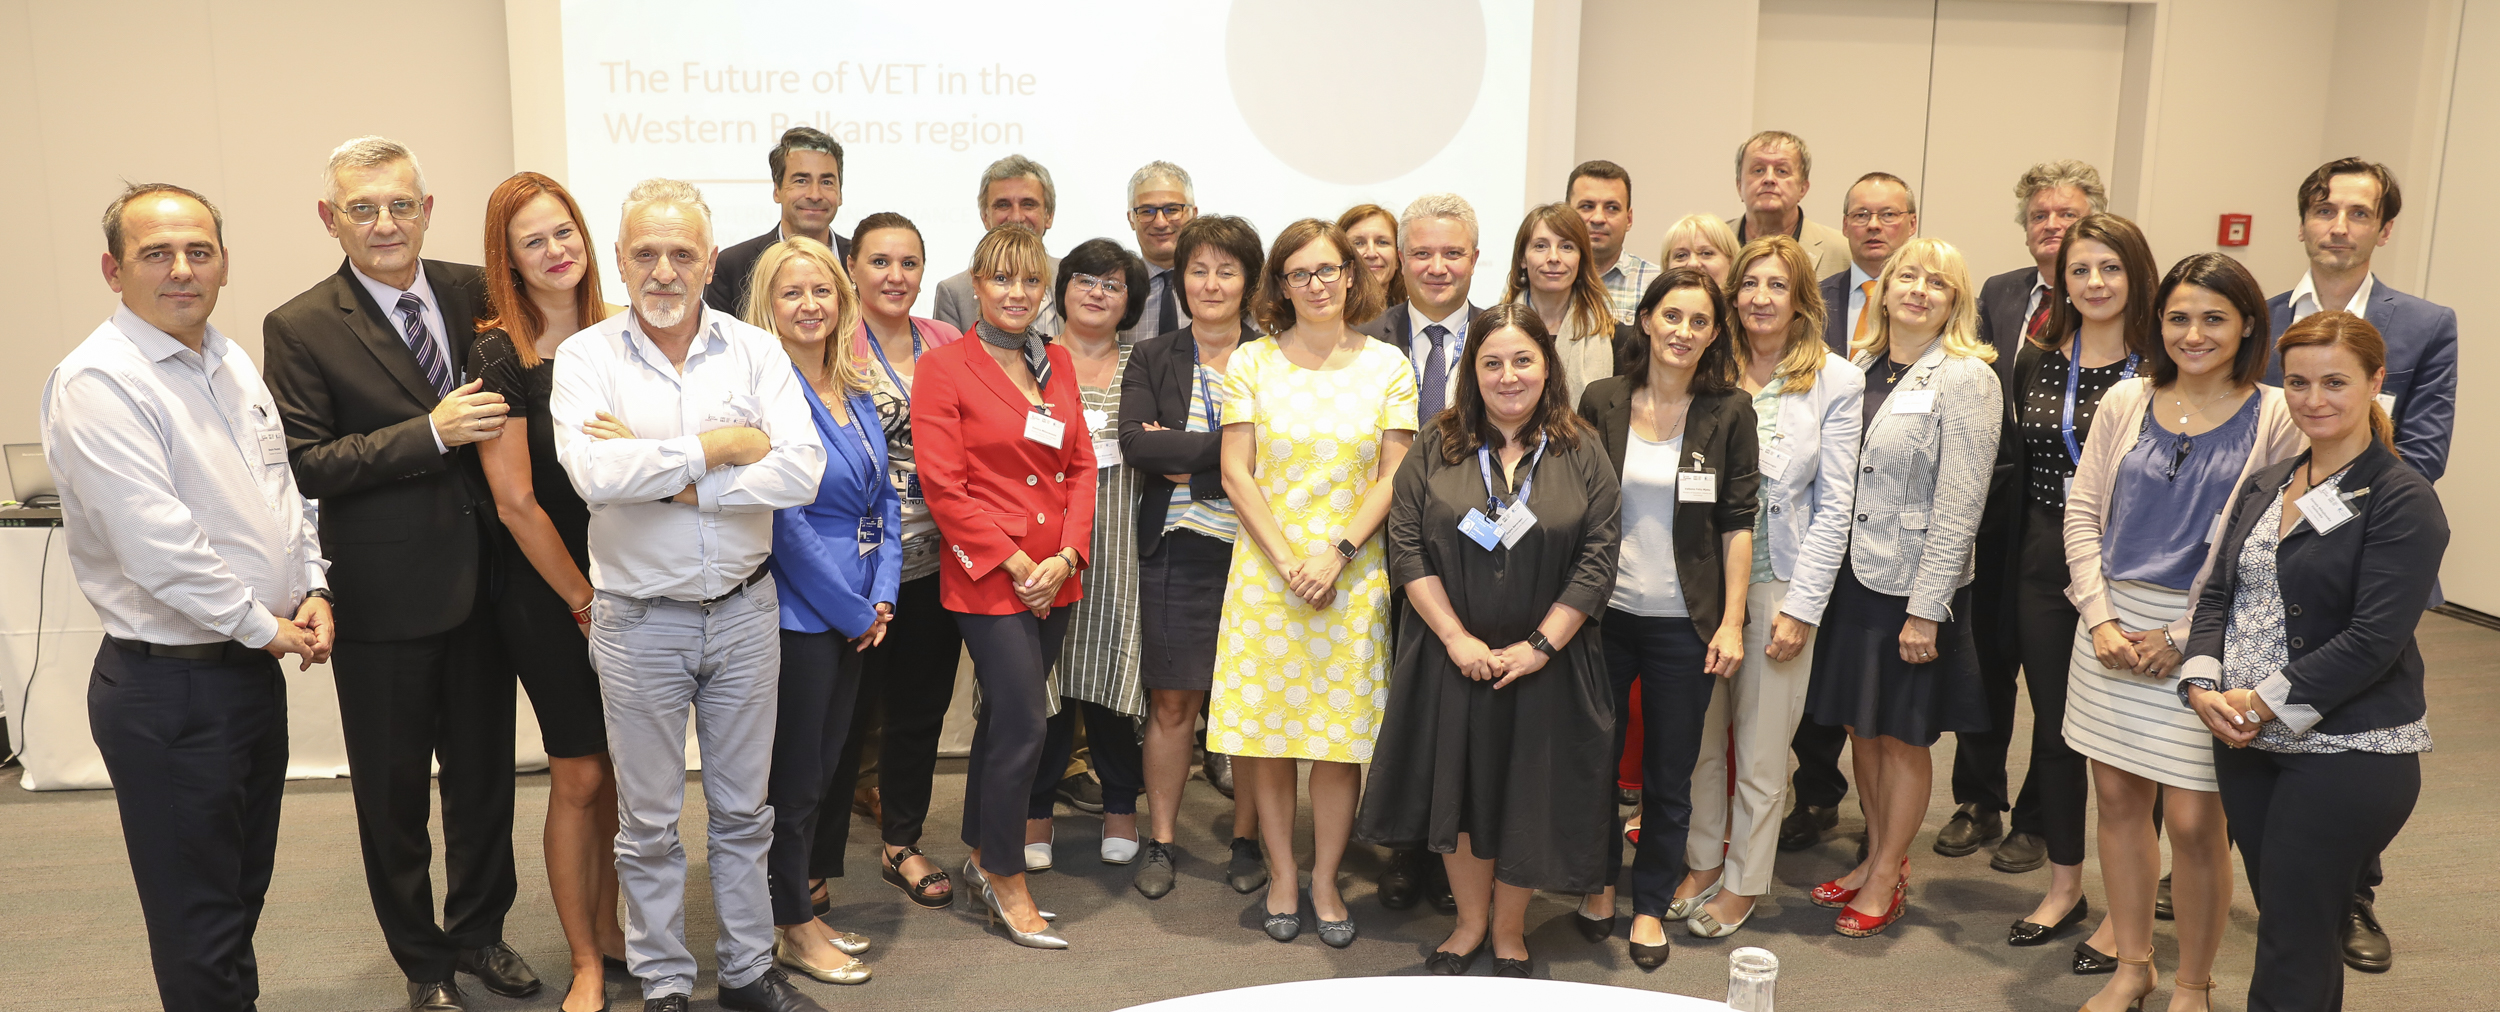 5th Meeting Of The Western Balkans Alliance For Work-Based Learning, Vienna, 10th And 11th July 2018